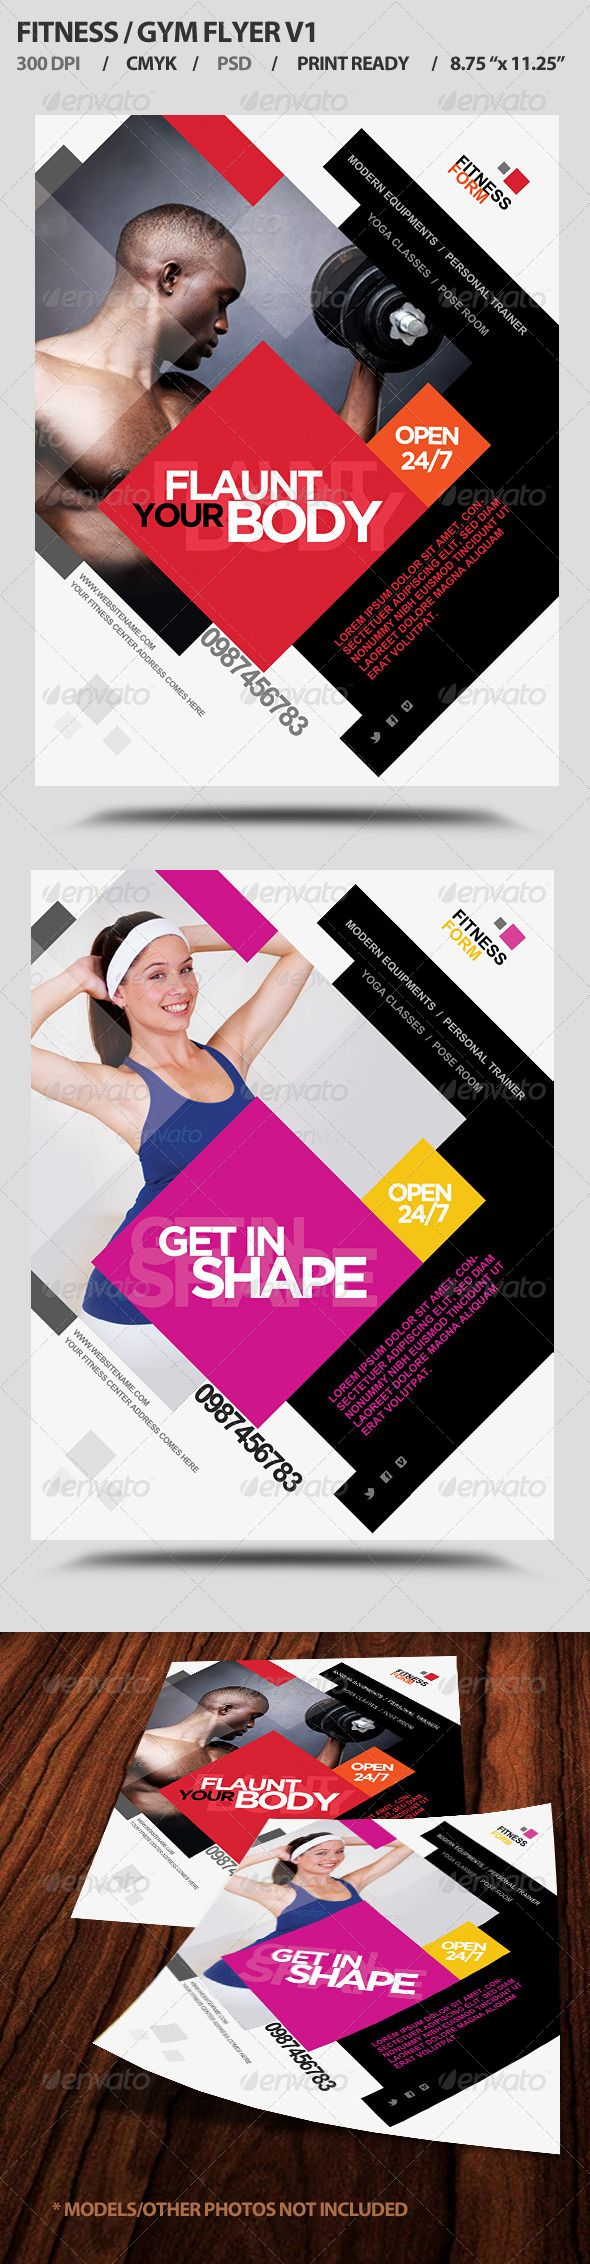 fitness gym business promotion flyer v1 graphics promotion and gym promotional flyer template by satgur design studio diagonals and asymmetry create energy